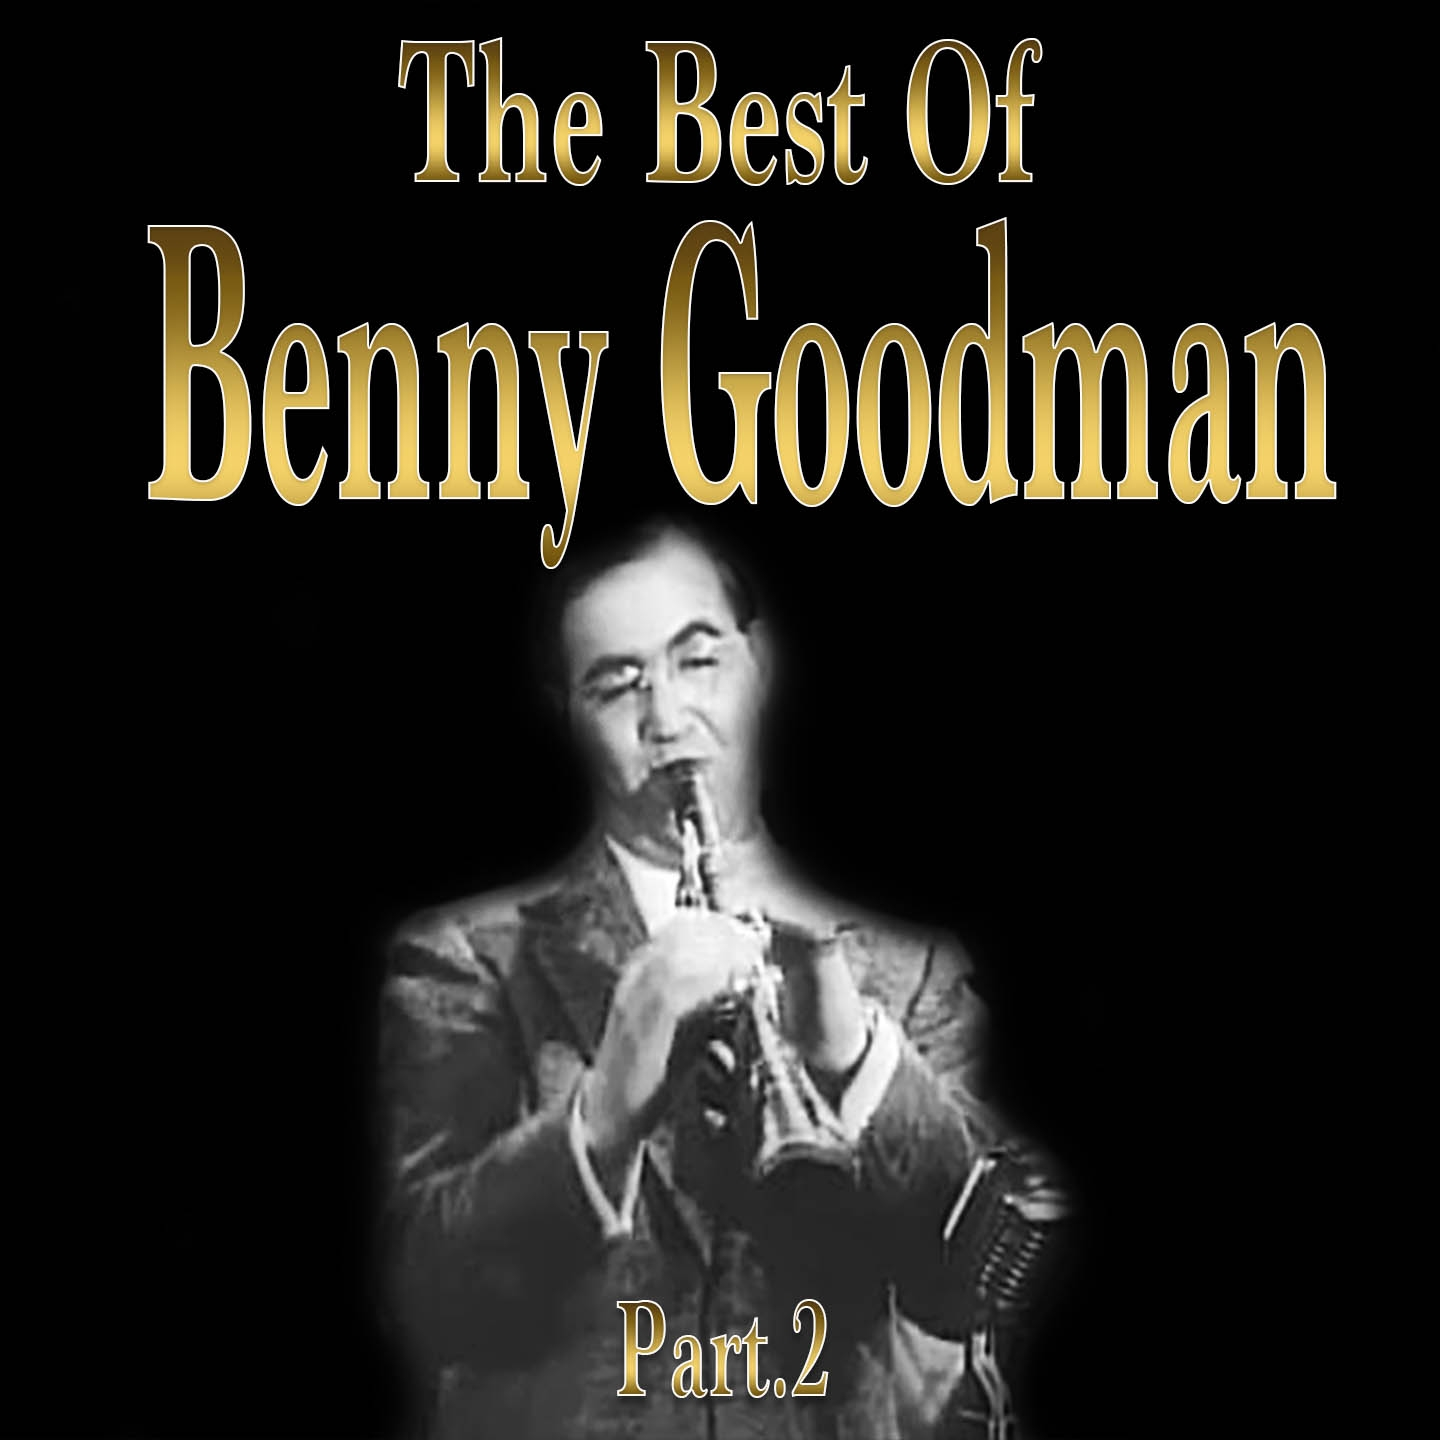 The Best of Benny Goodman, Part 2